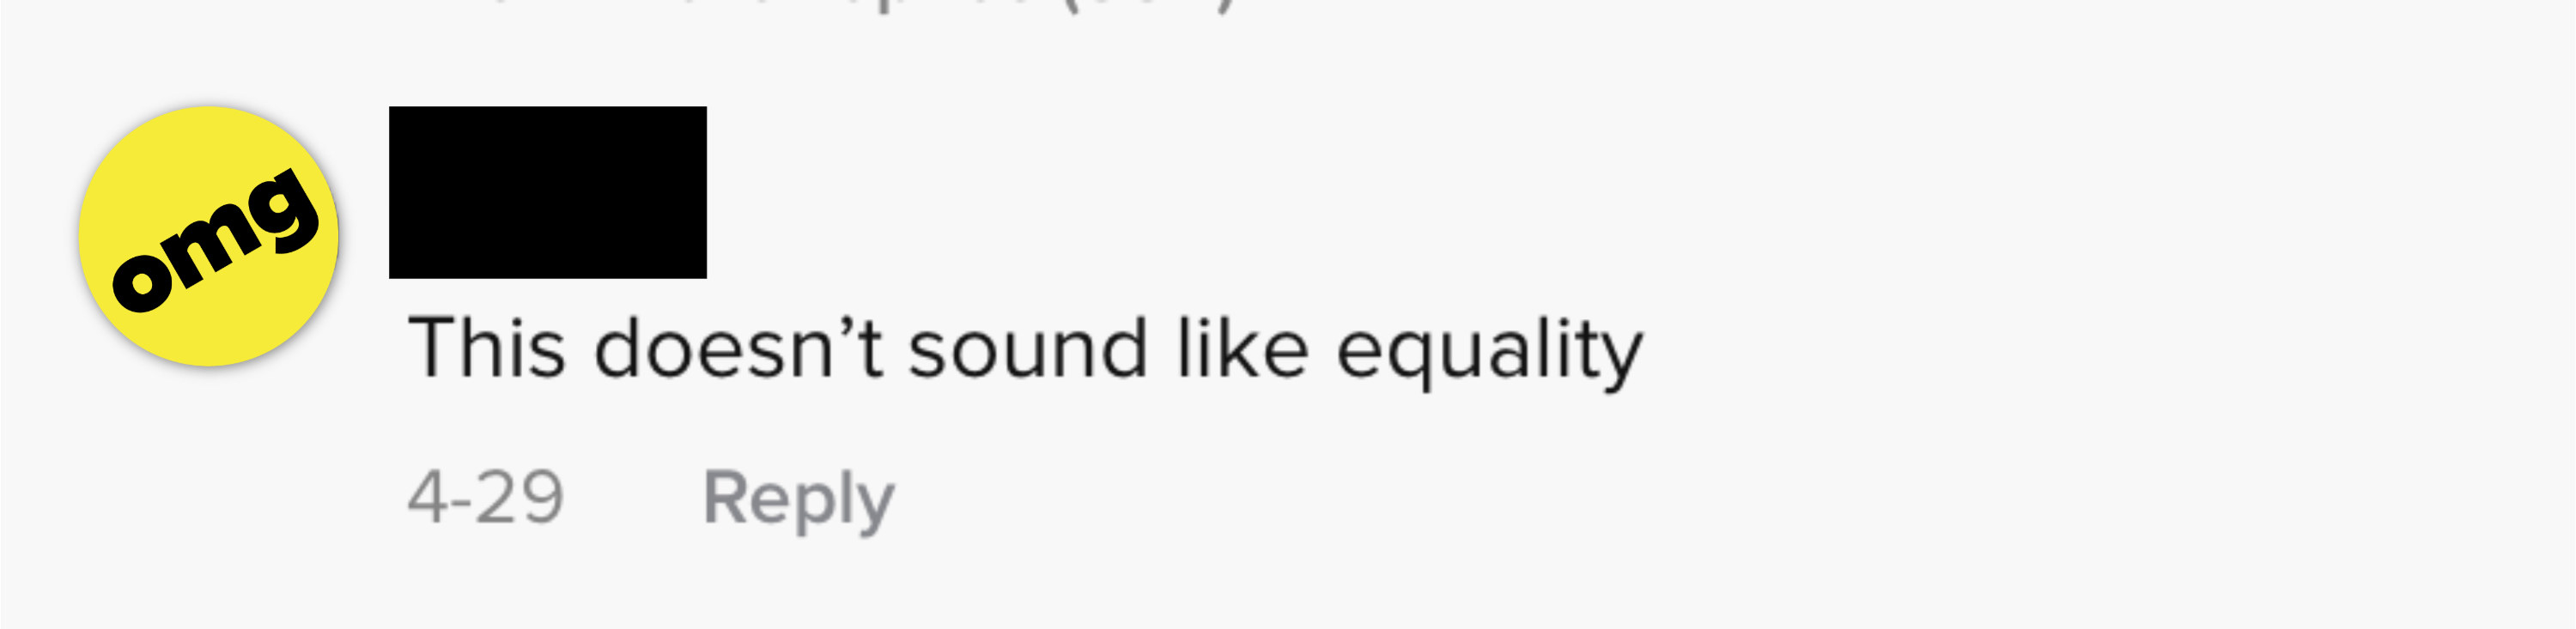 This doesn't sound like equality